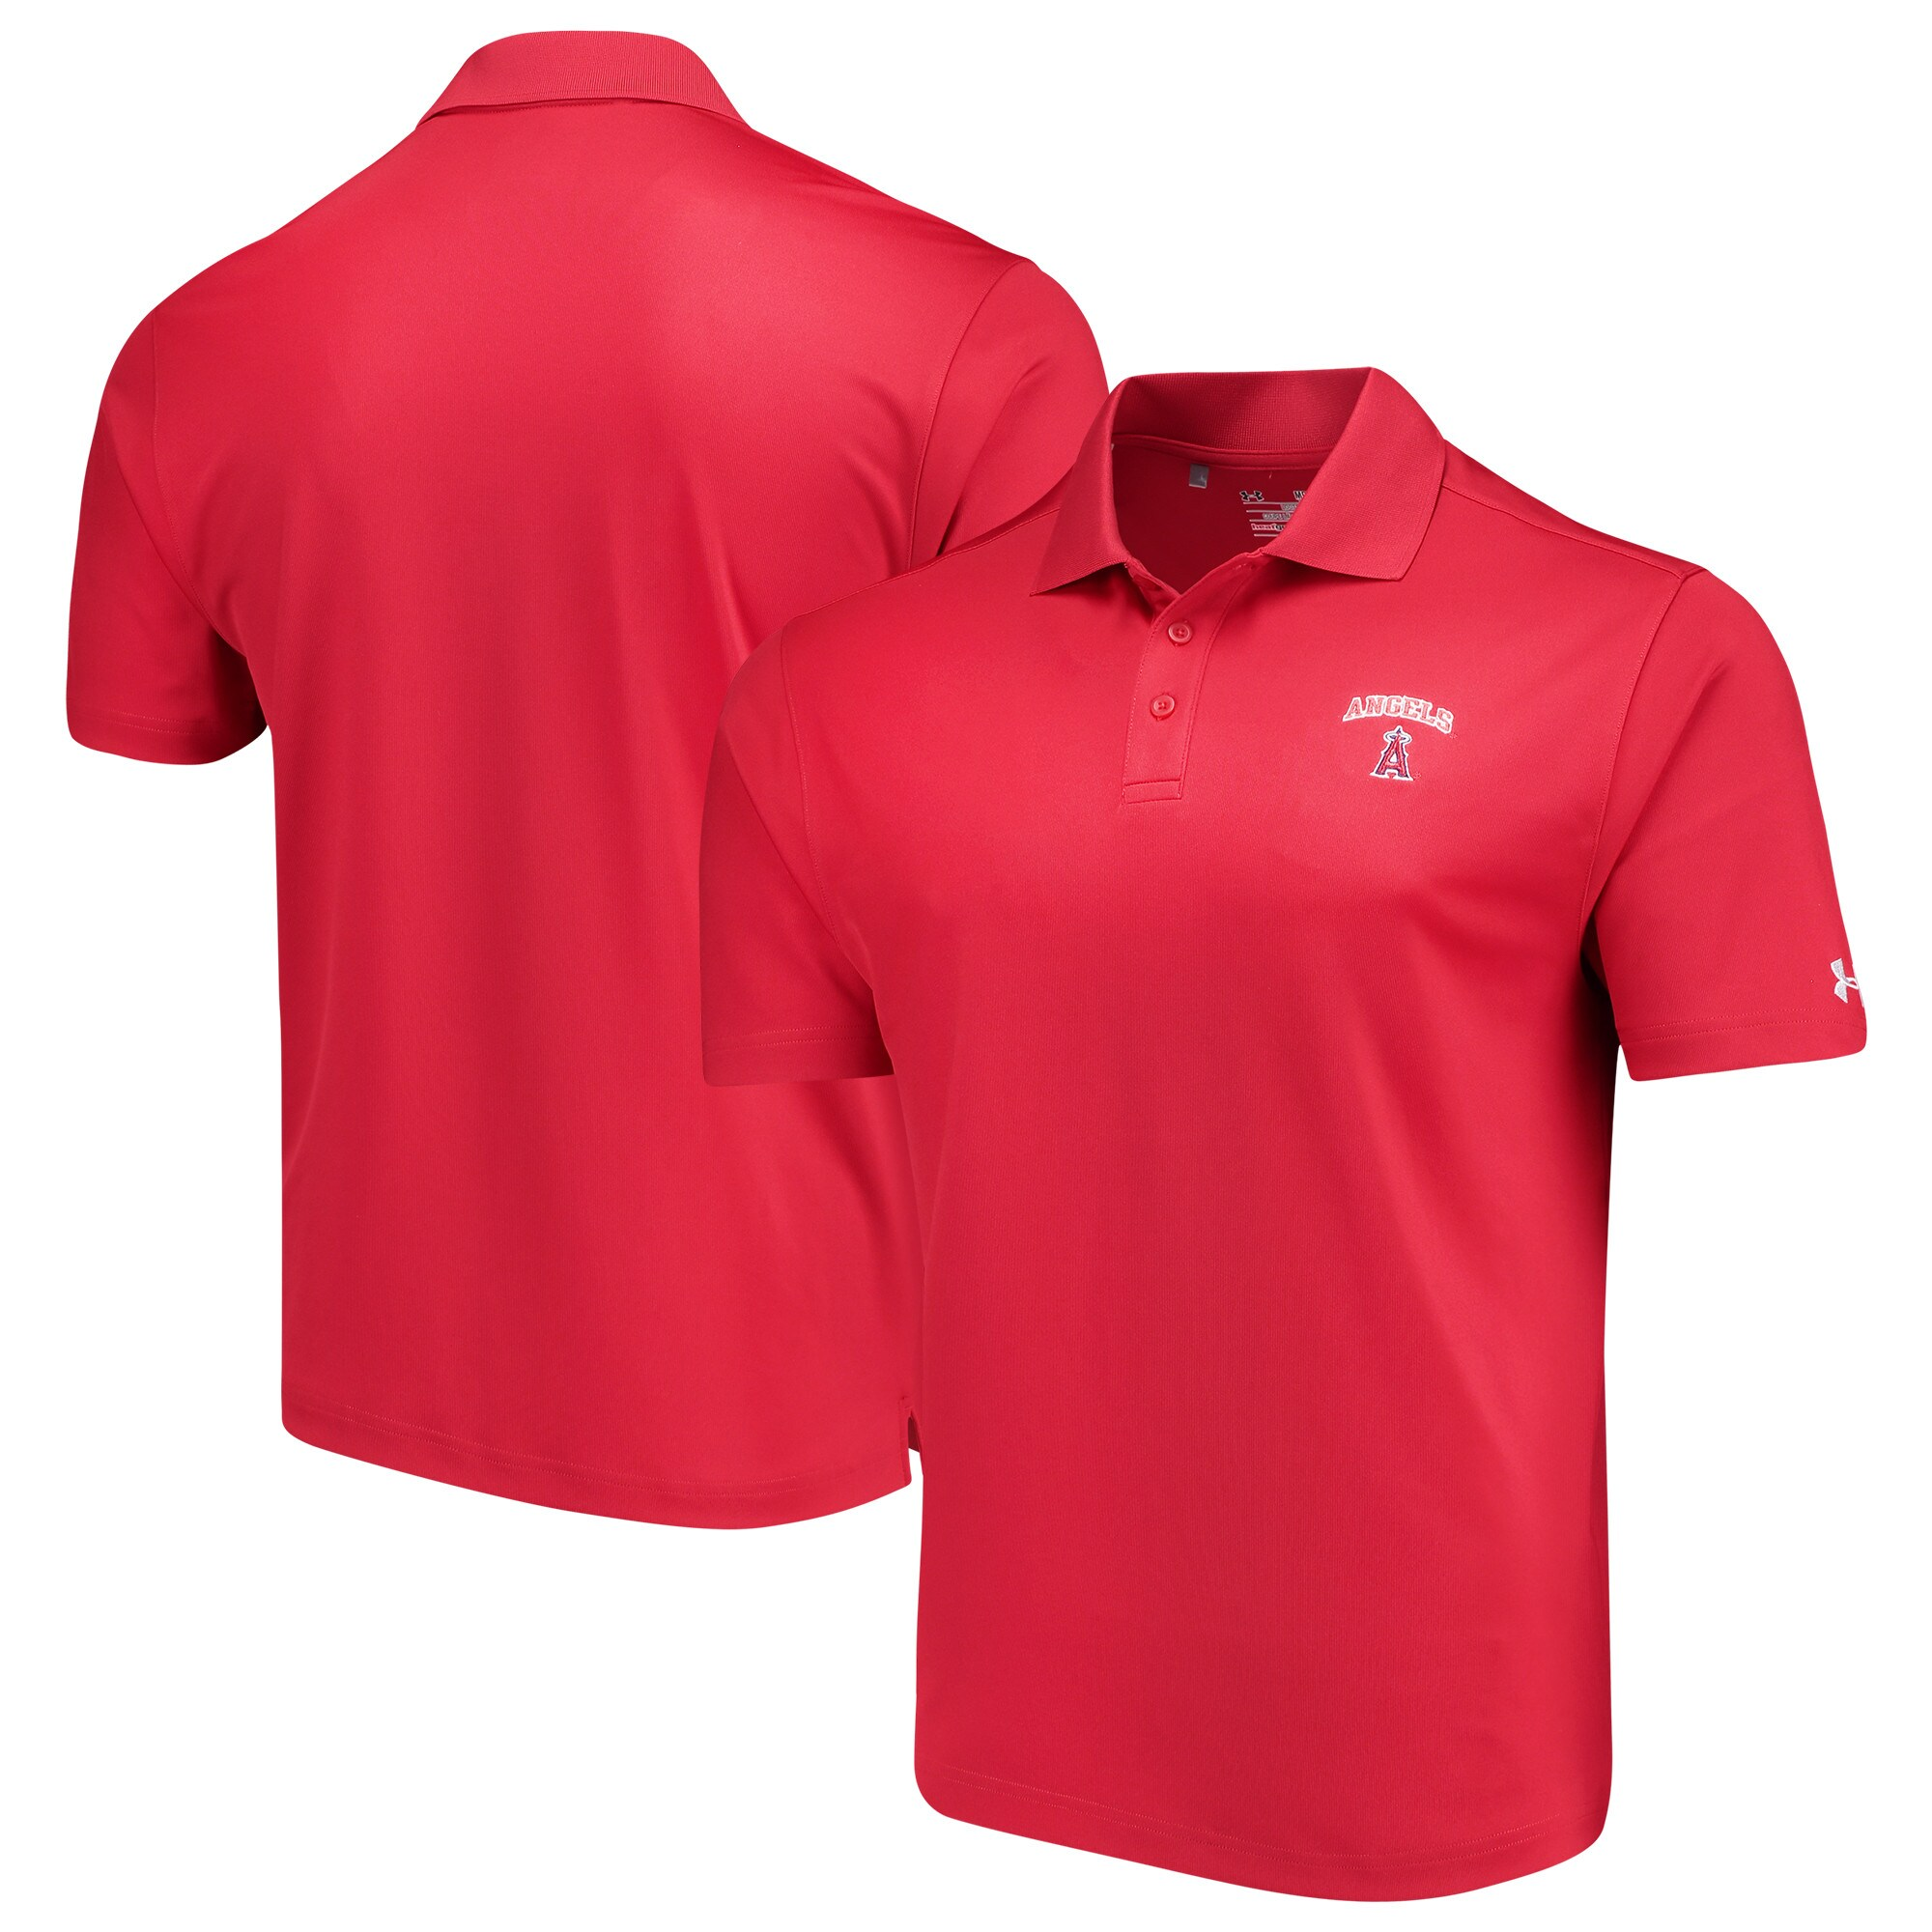 Los Angeles Angels Under Armour Performance Polo - Red